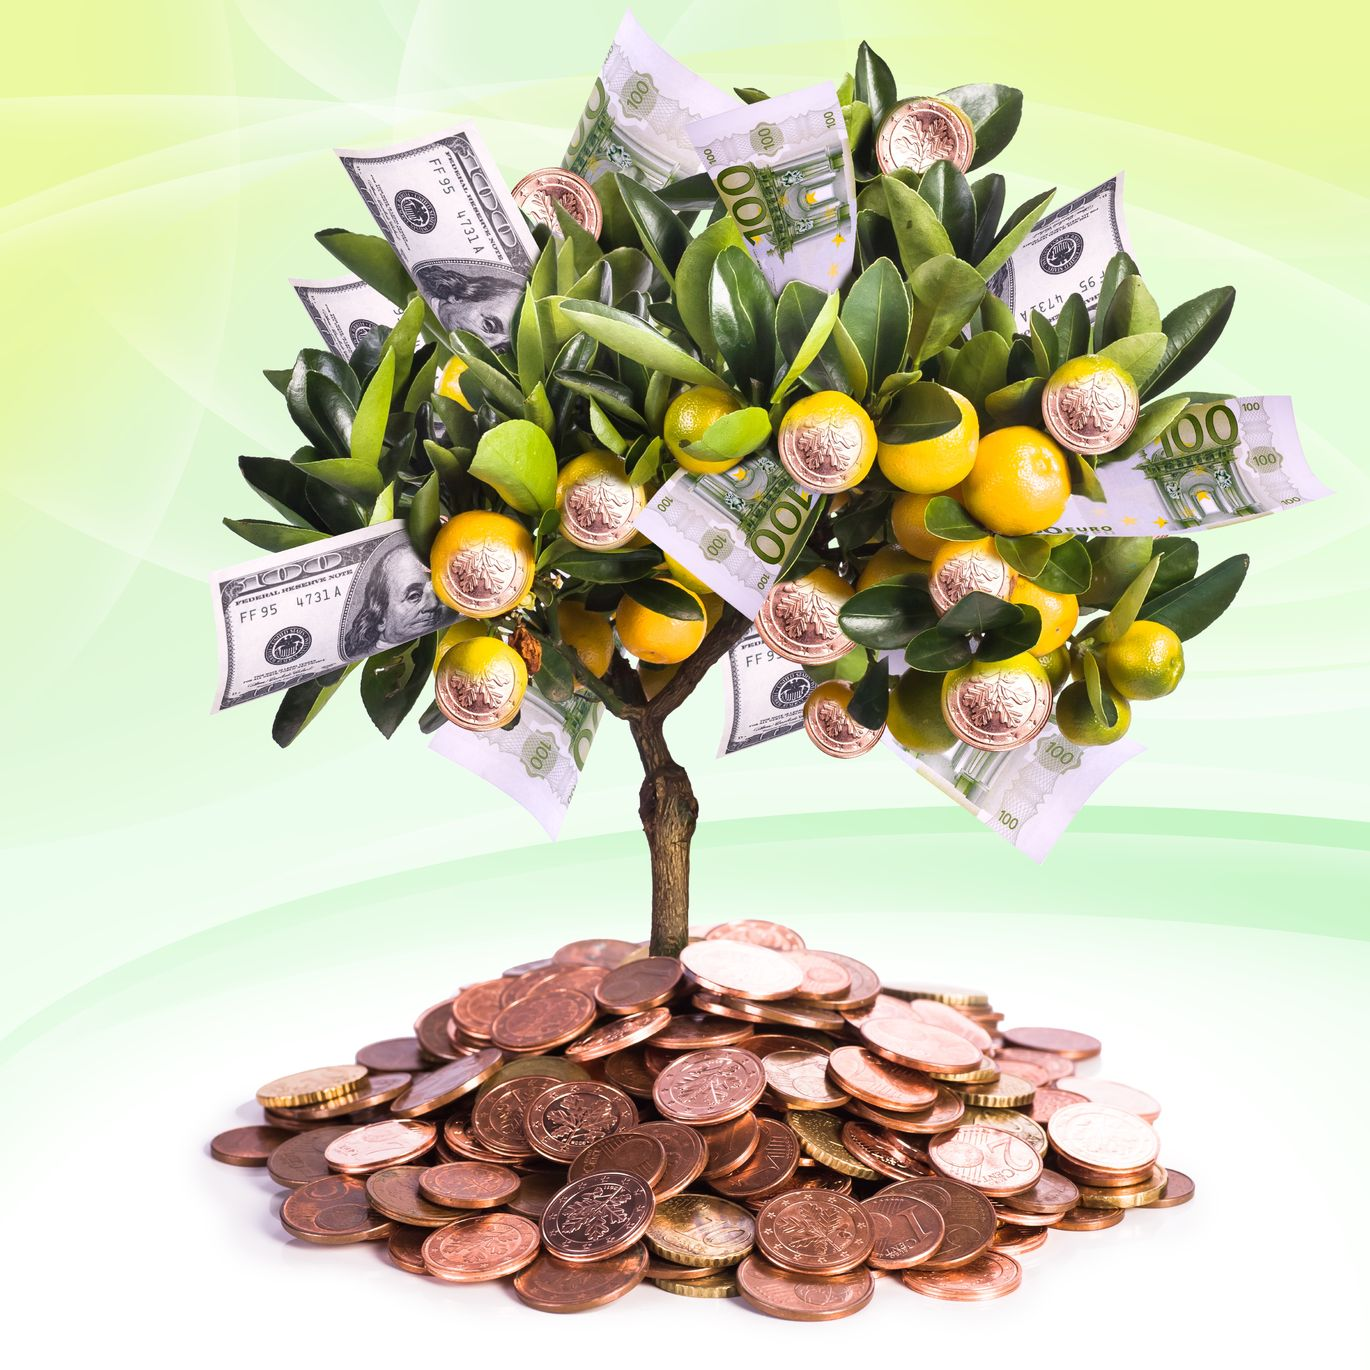 Money Tree - Financial Health And High Blood Pressure  https://www.info-on-high-blood-pressure.com/Financial-Health.html